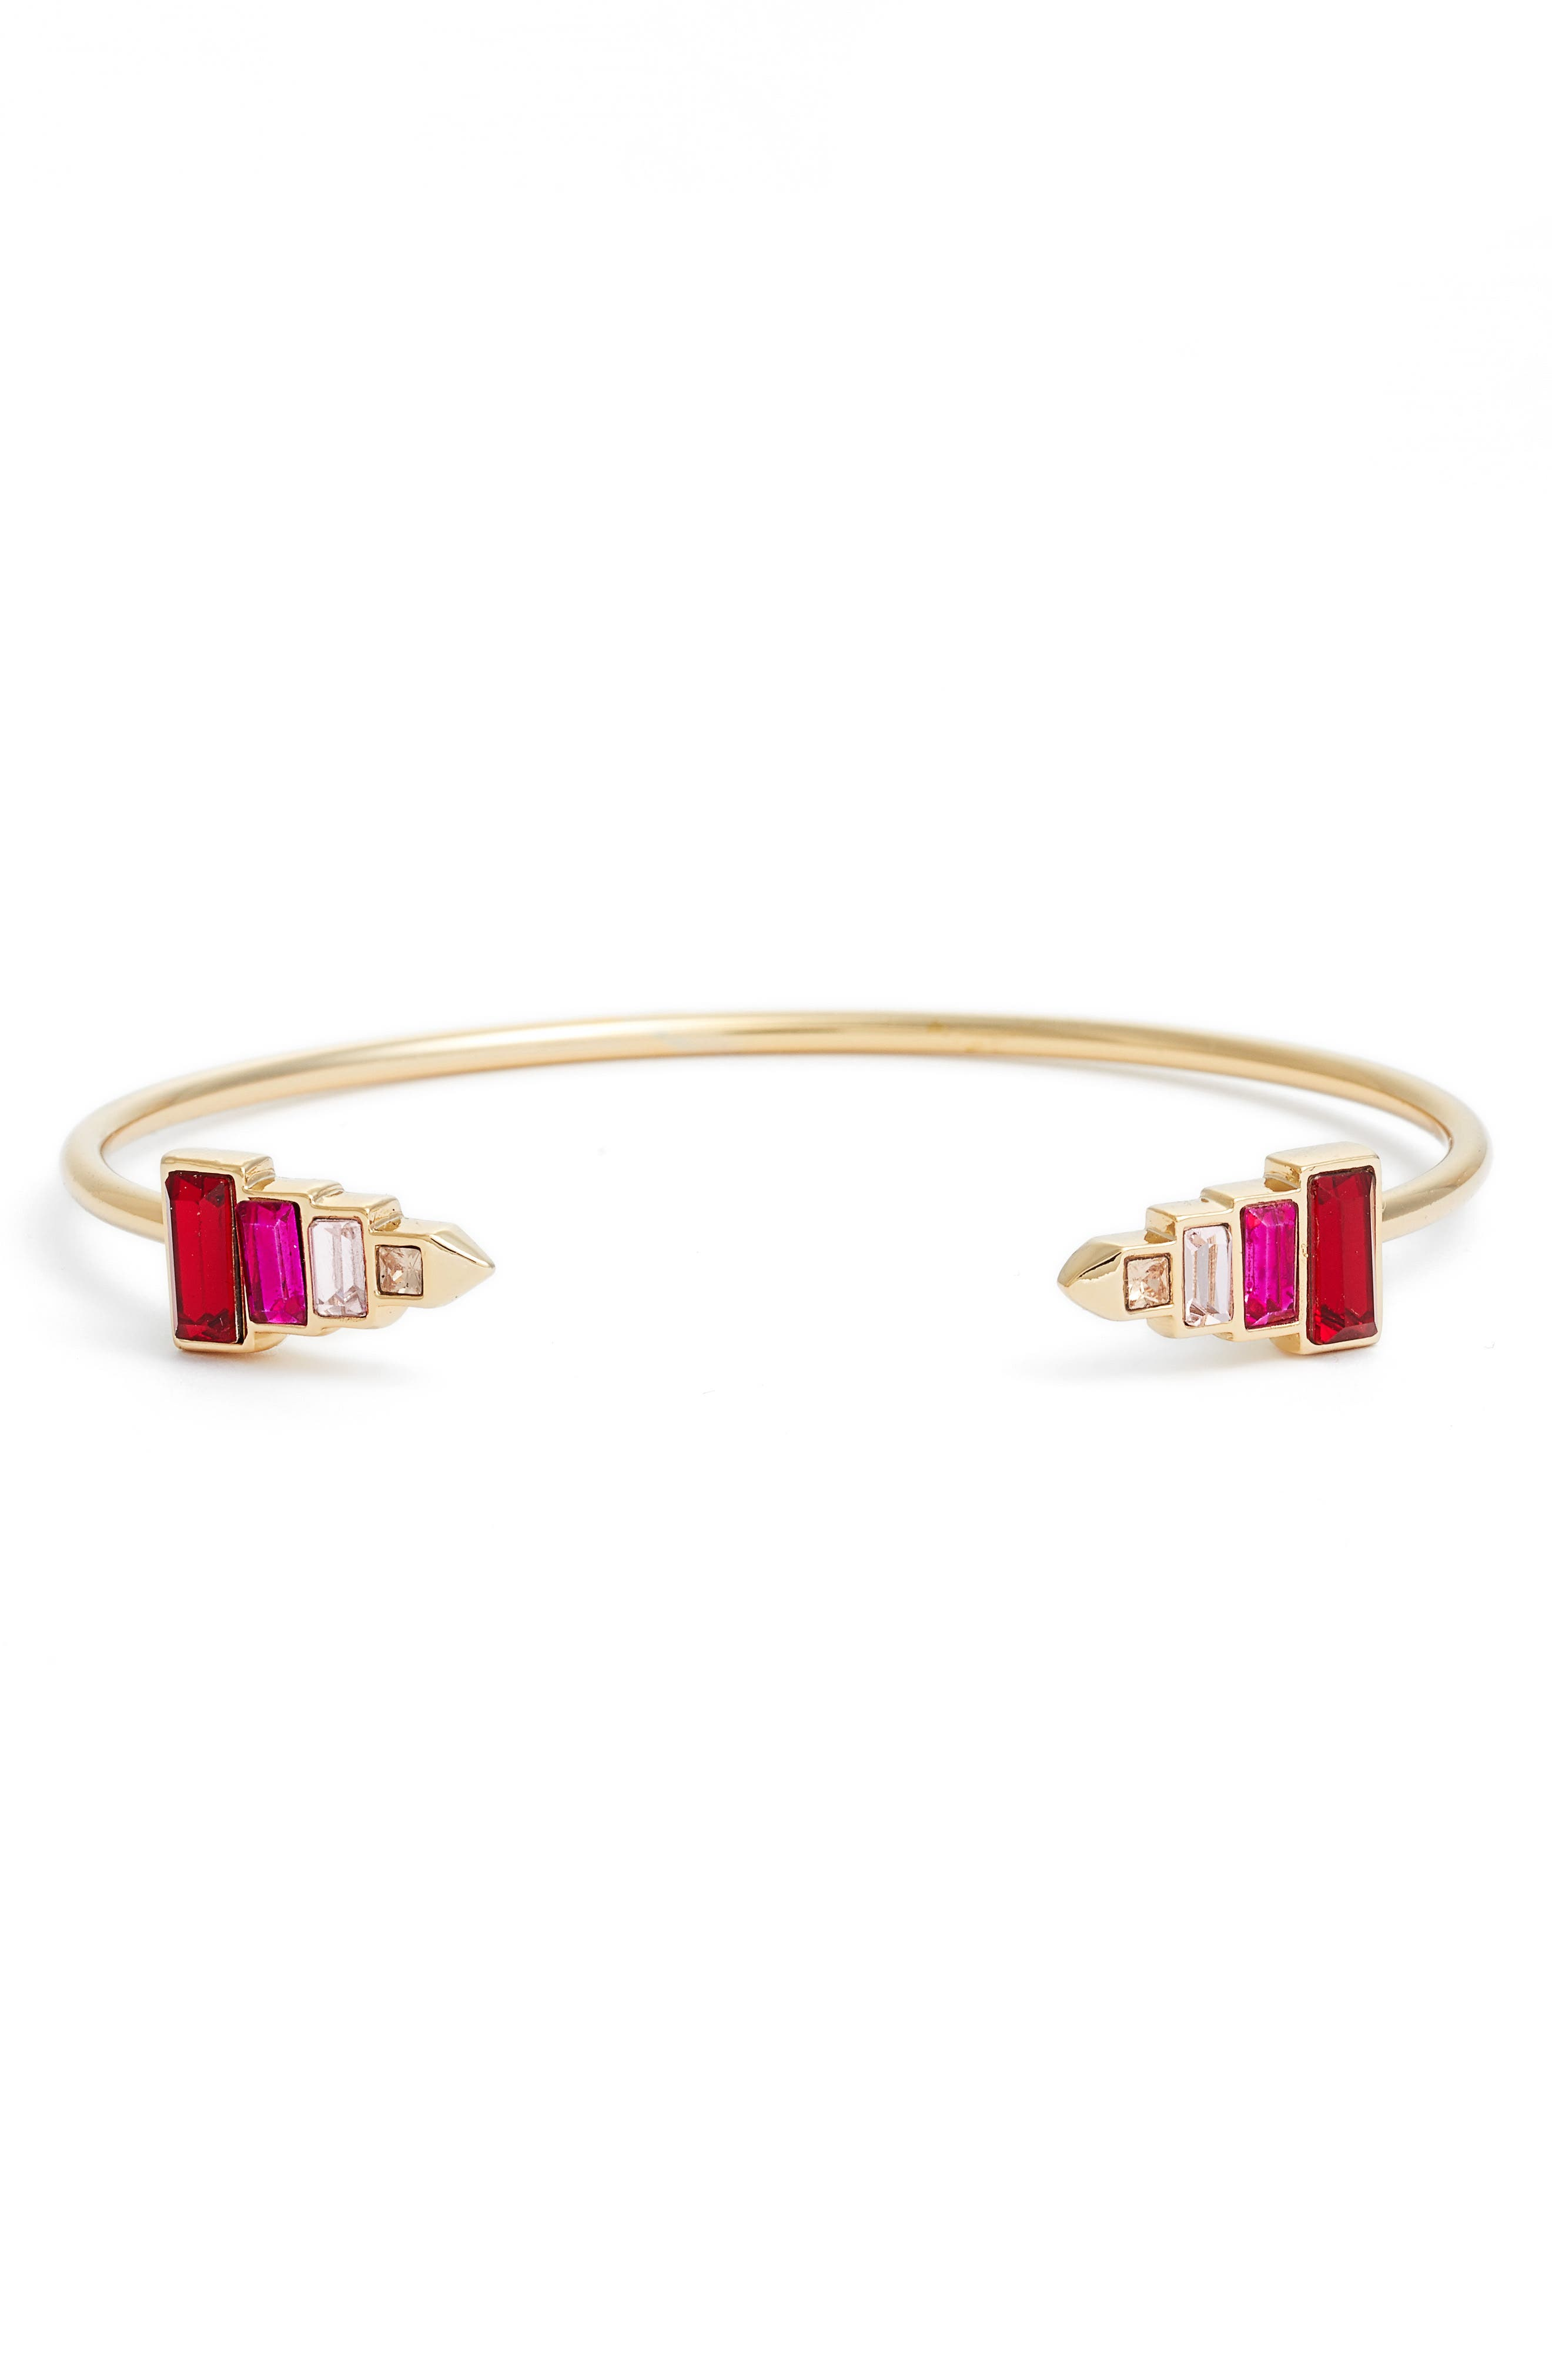 Skinny Cuff,                             Main thumbnail 1, color,                             Red/ Gold